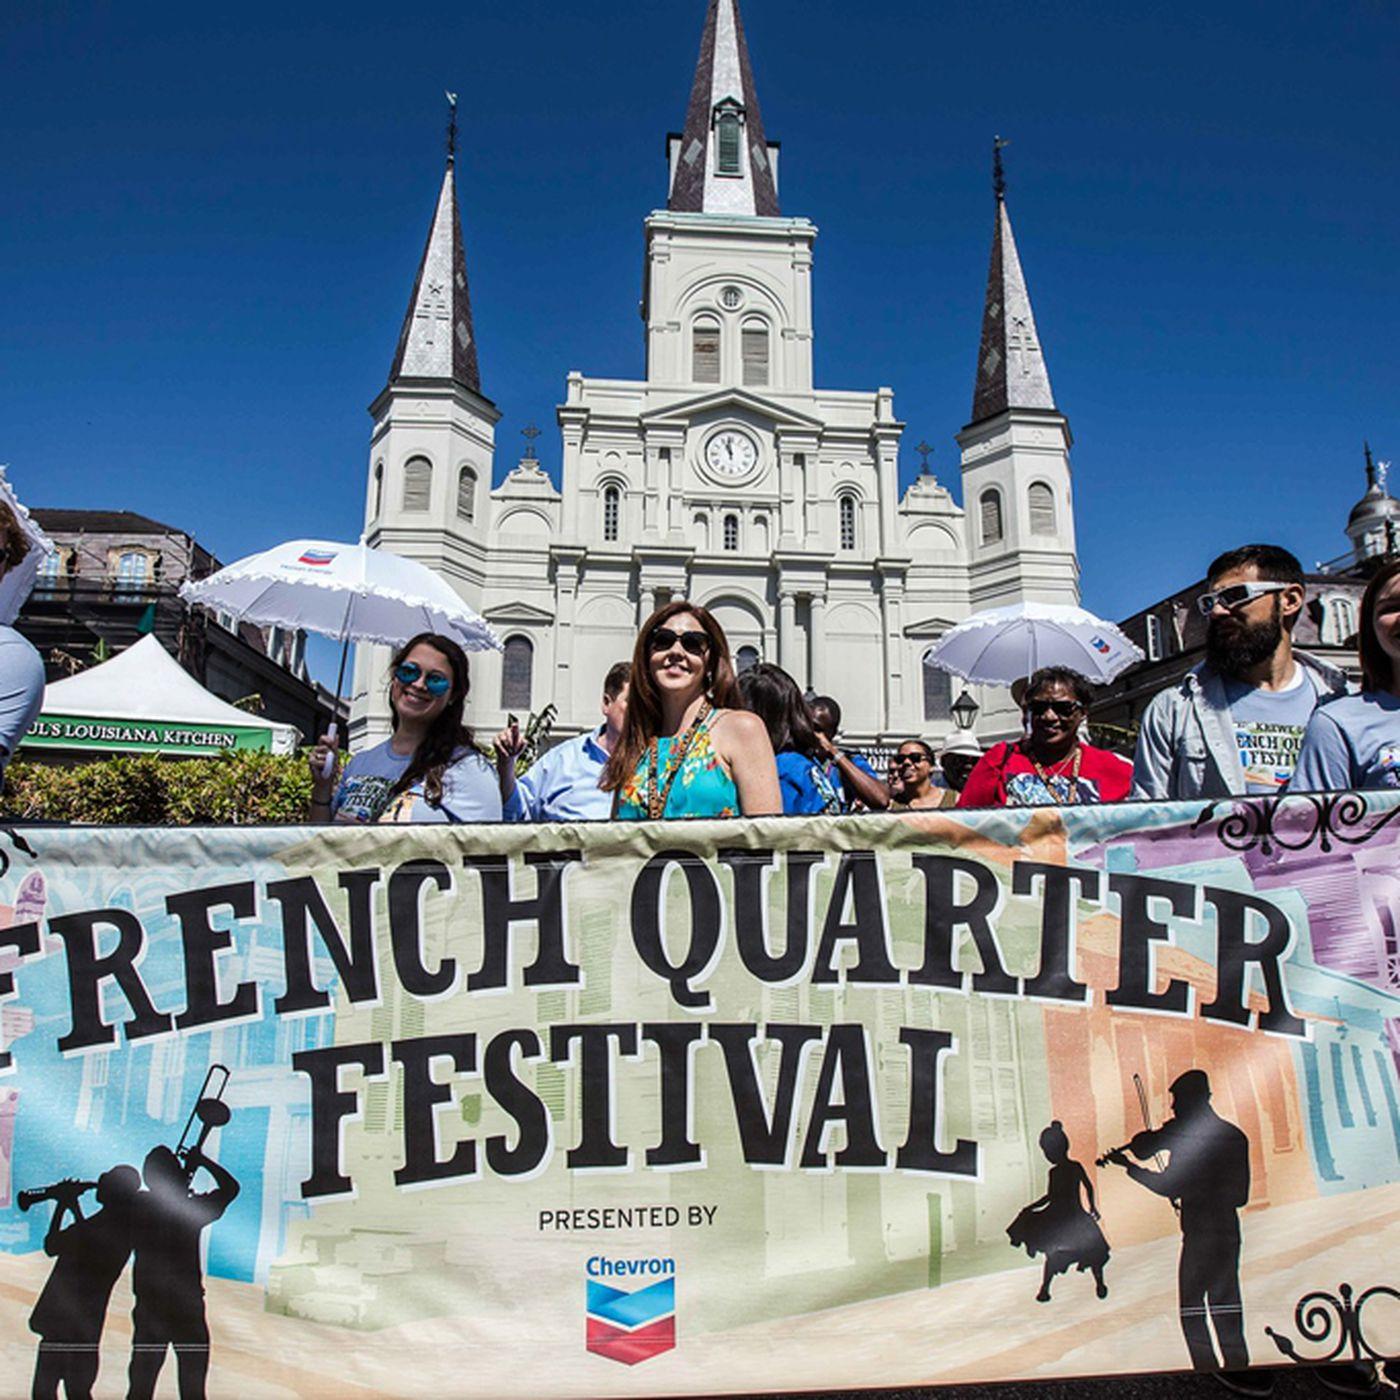 French Quarter Festival street closures and stage locations